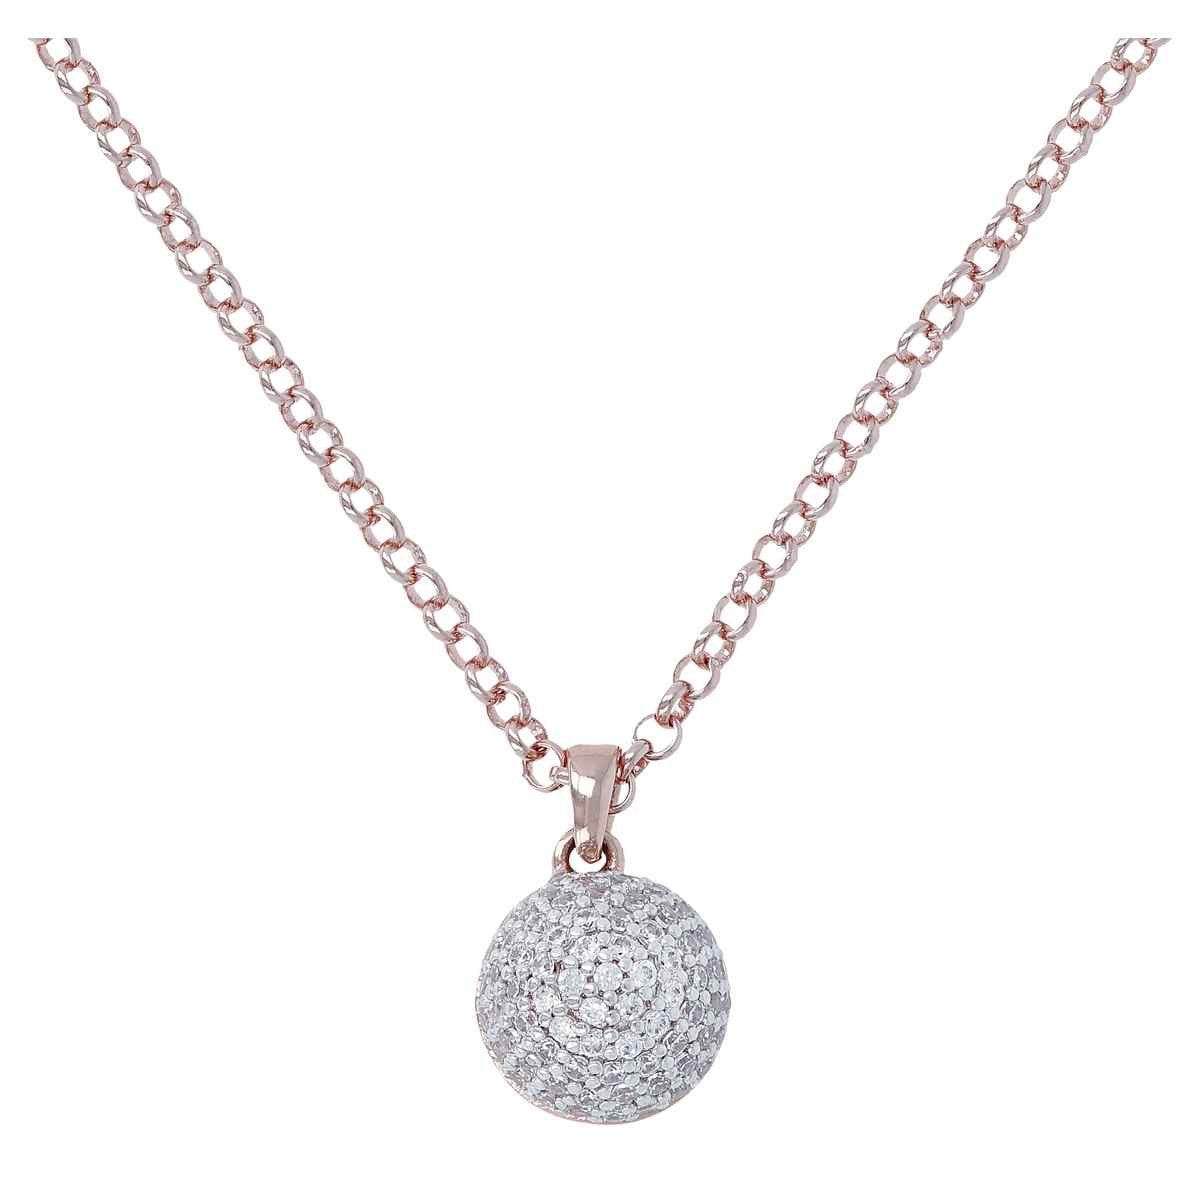 Ball chain necklace CUBIC ZIRCONIA